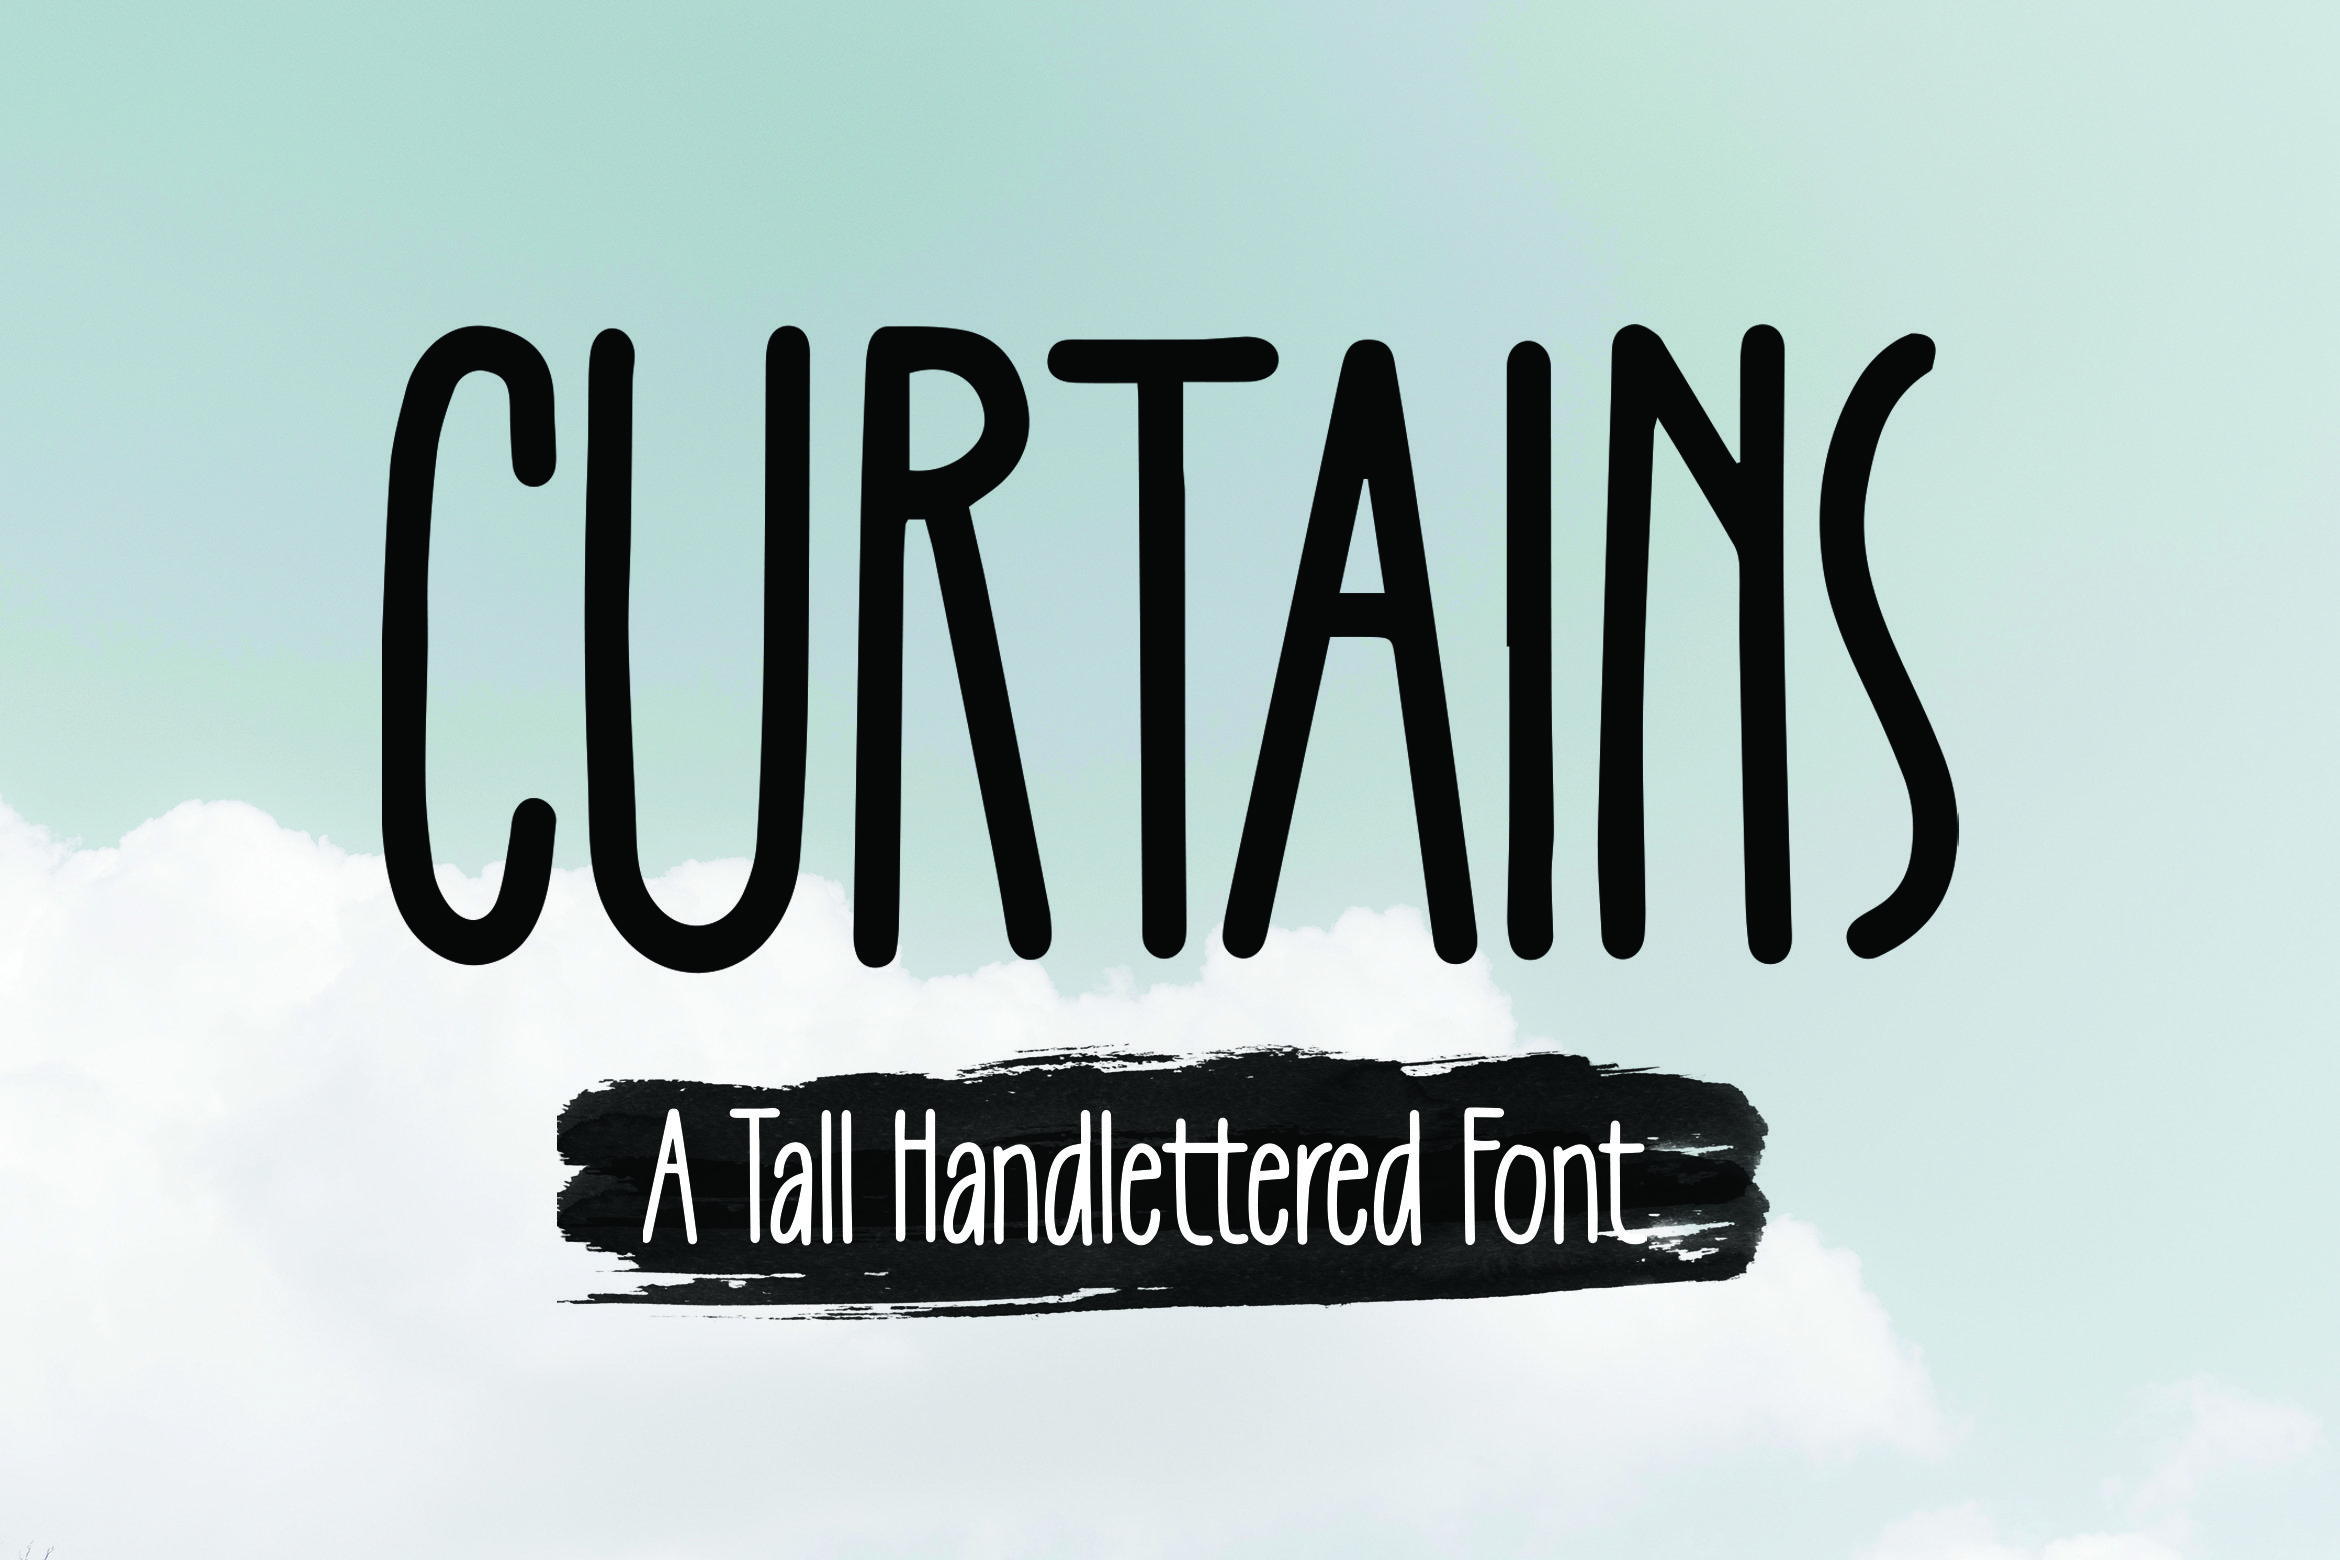 Curtains -Tall Handlettered Font example image 1